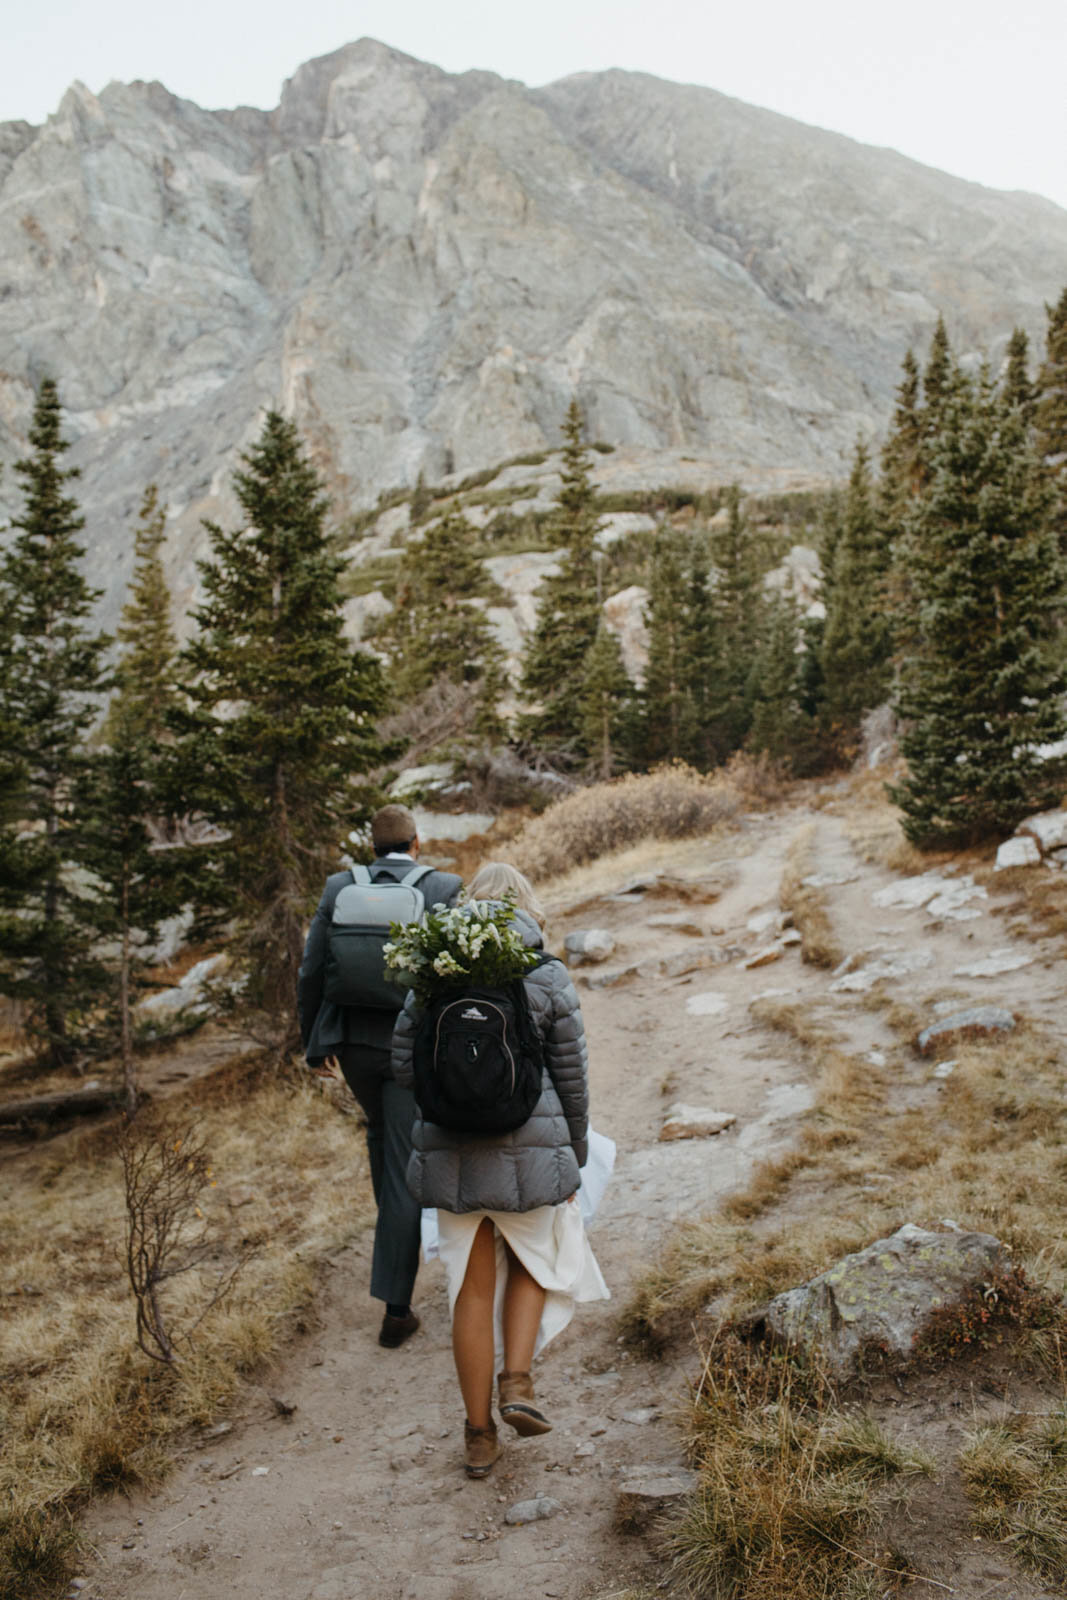 A photo taken behind a bride and groom hiking on a mountain, the bride has the flower bouquet attached to her backpack